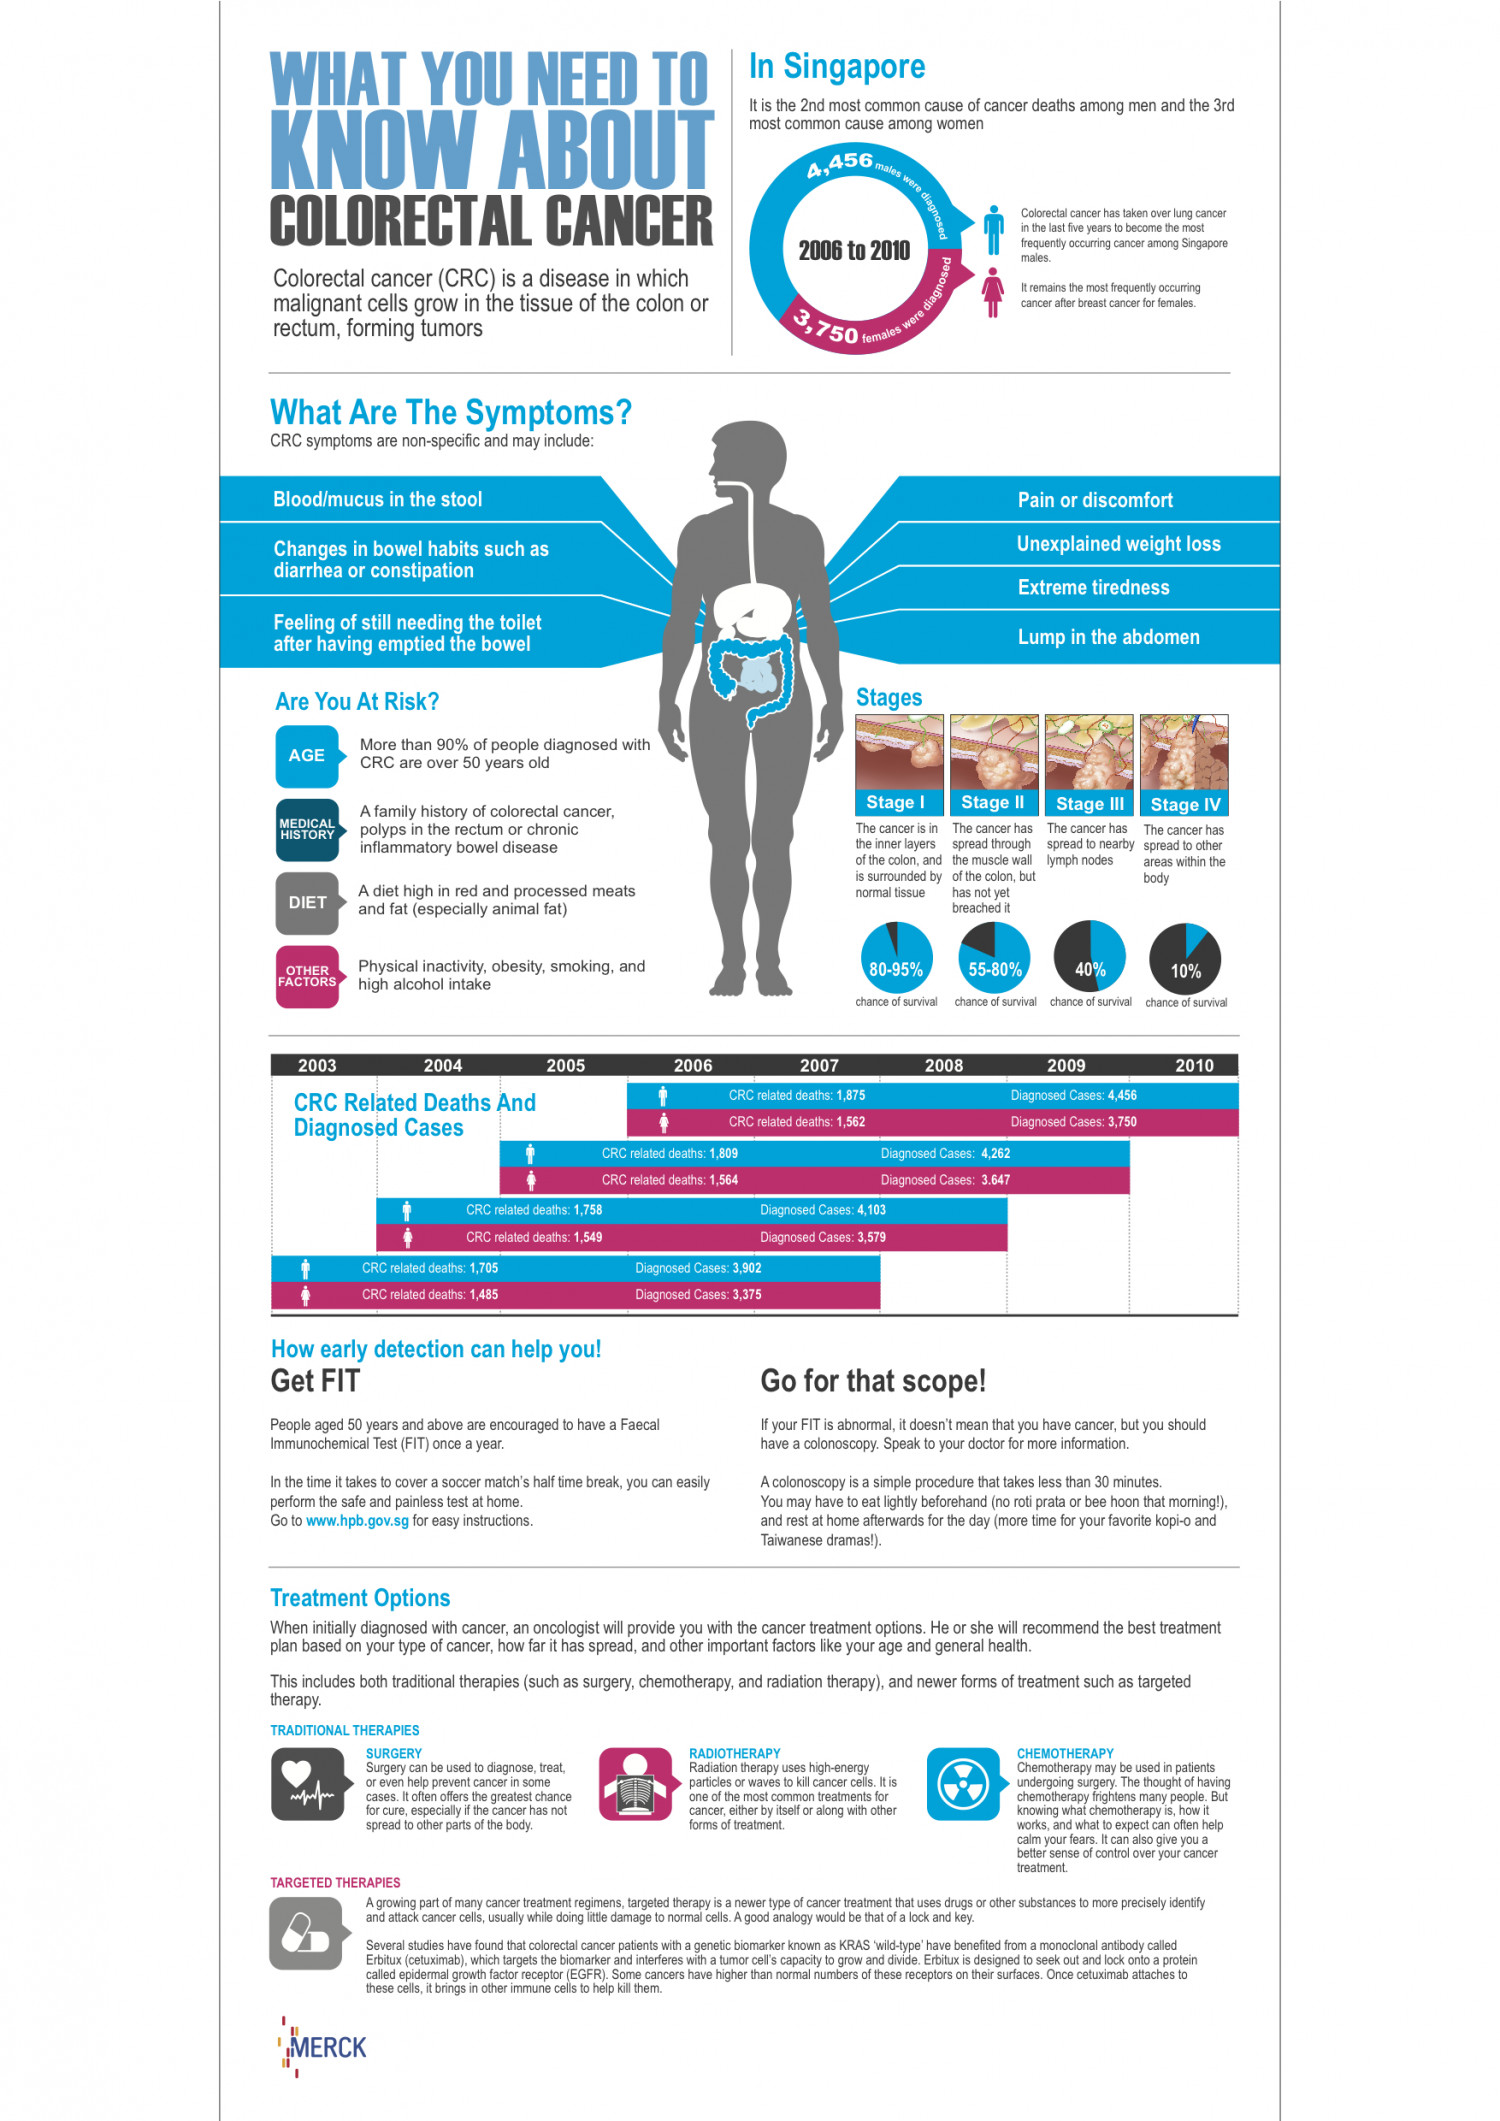 Colorectal cancer: What You Need to Know Infographic